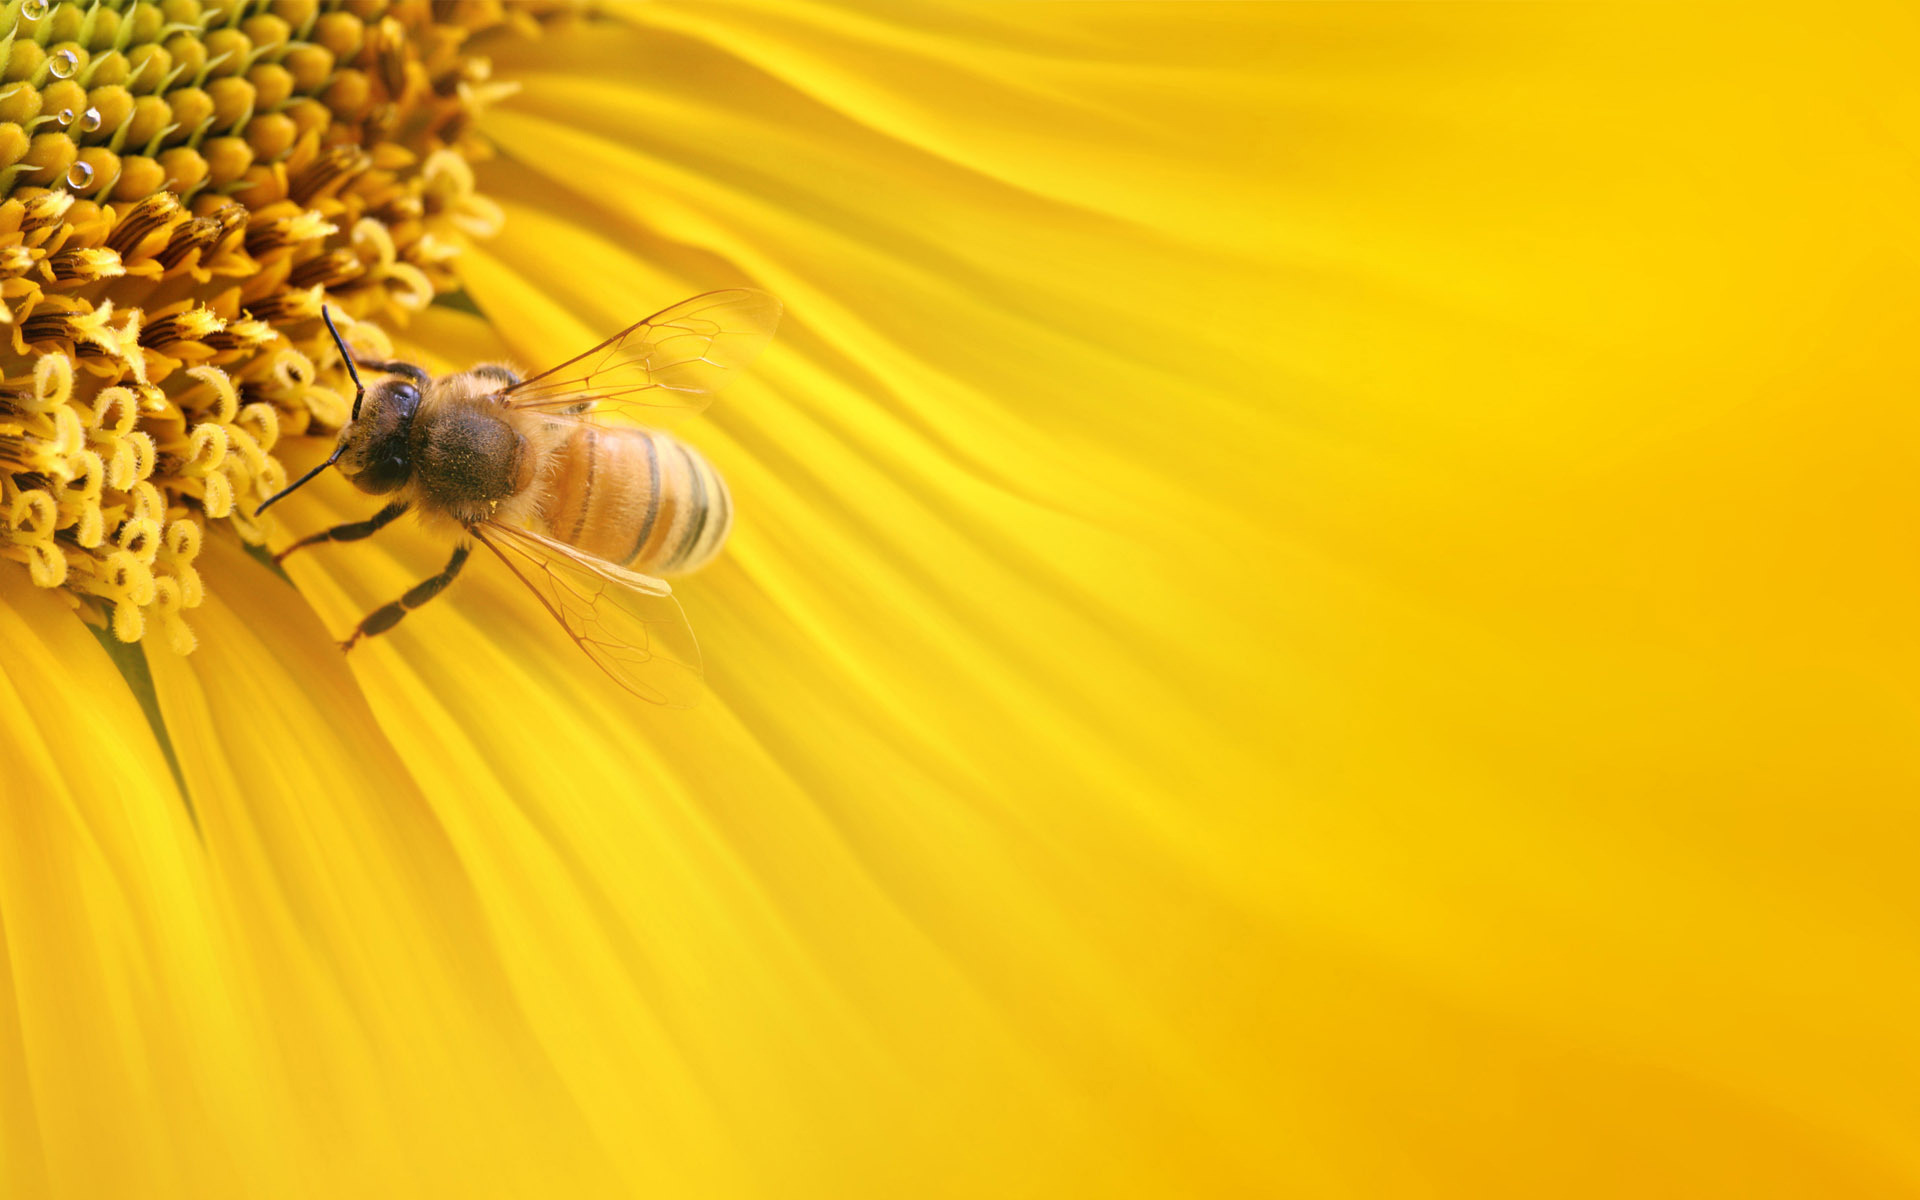 beehive wallpapers - photo #29